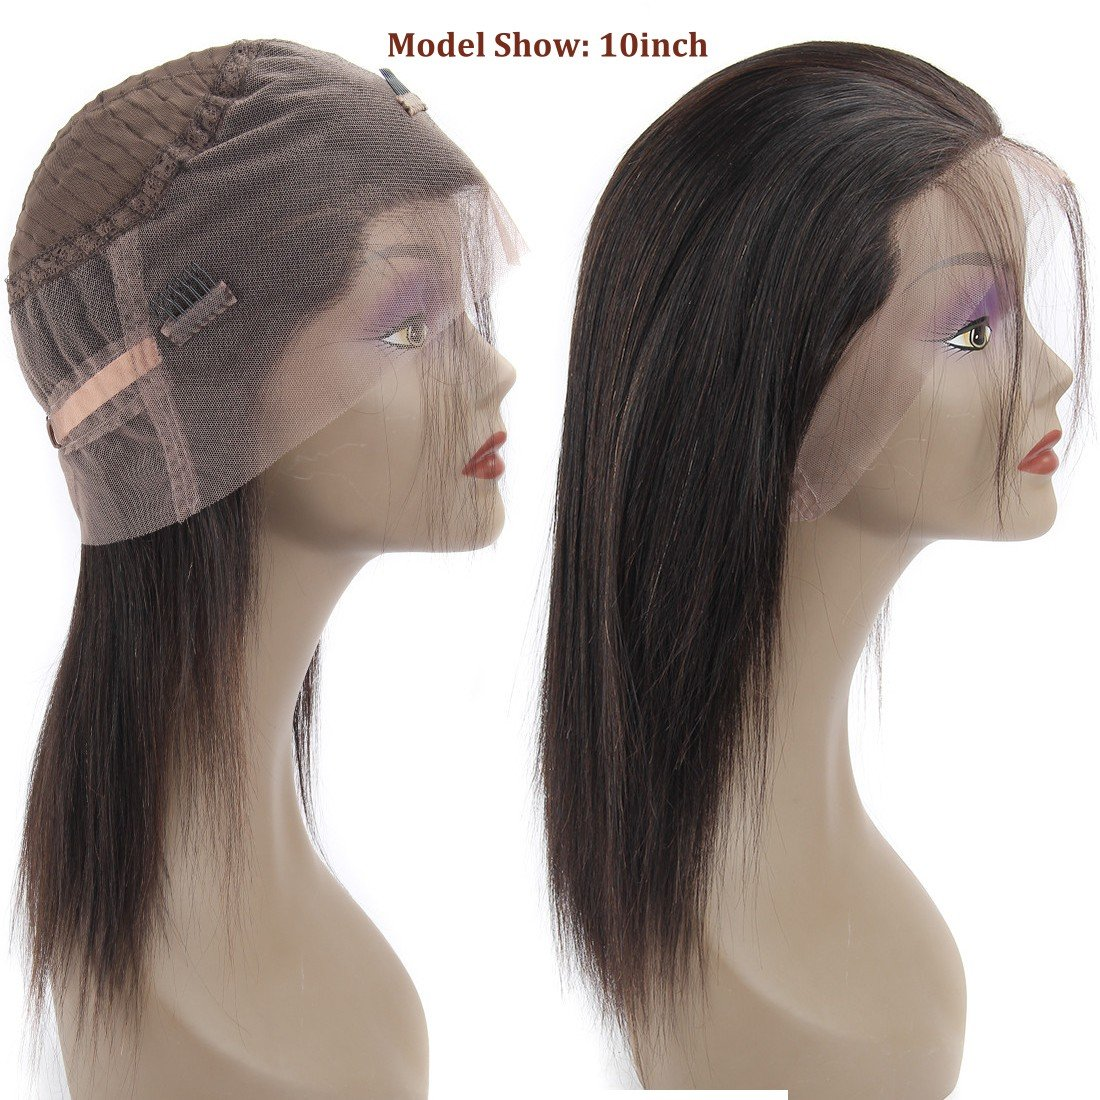 360 Frontal Lace Wig Straight 360 Lace Front Human Hair Wigs Peruvian Virgin 360 Lace Frontal Wig 130% Density with Pre Plucked Natural Hairline Baby Hair 360 Degree Lace Human Hair Wig (14inch) by QUEENA (Image #5)